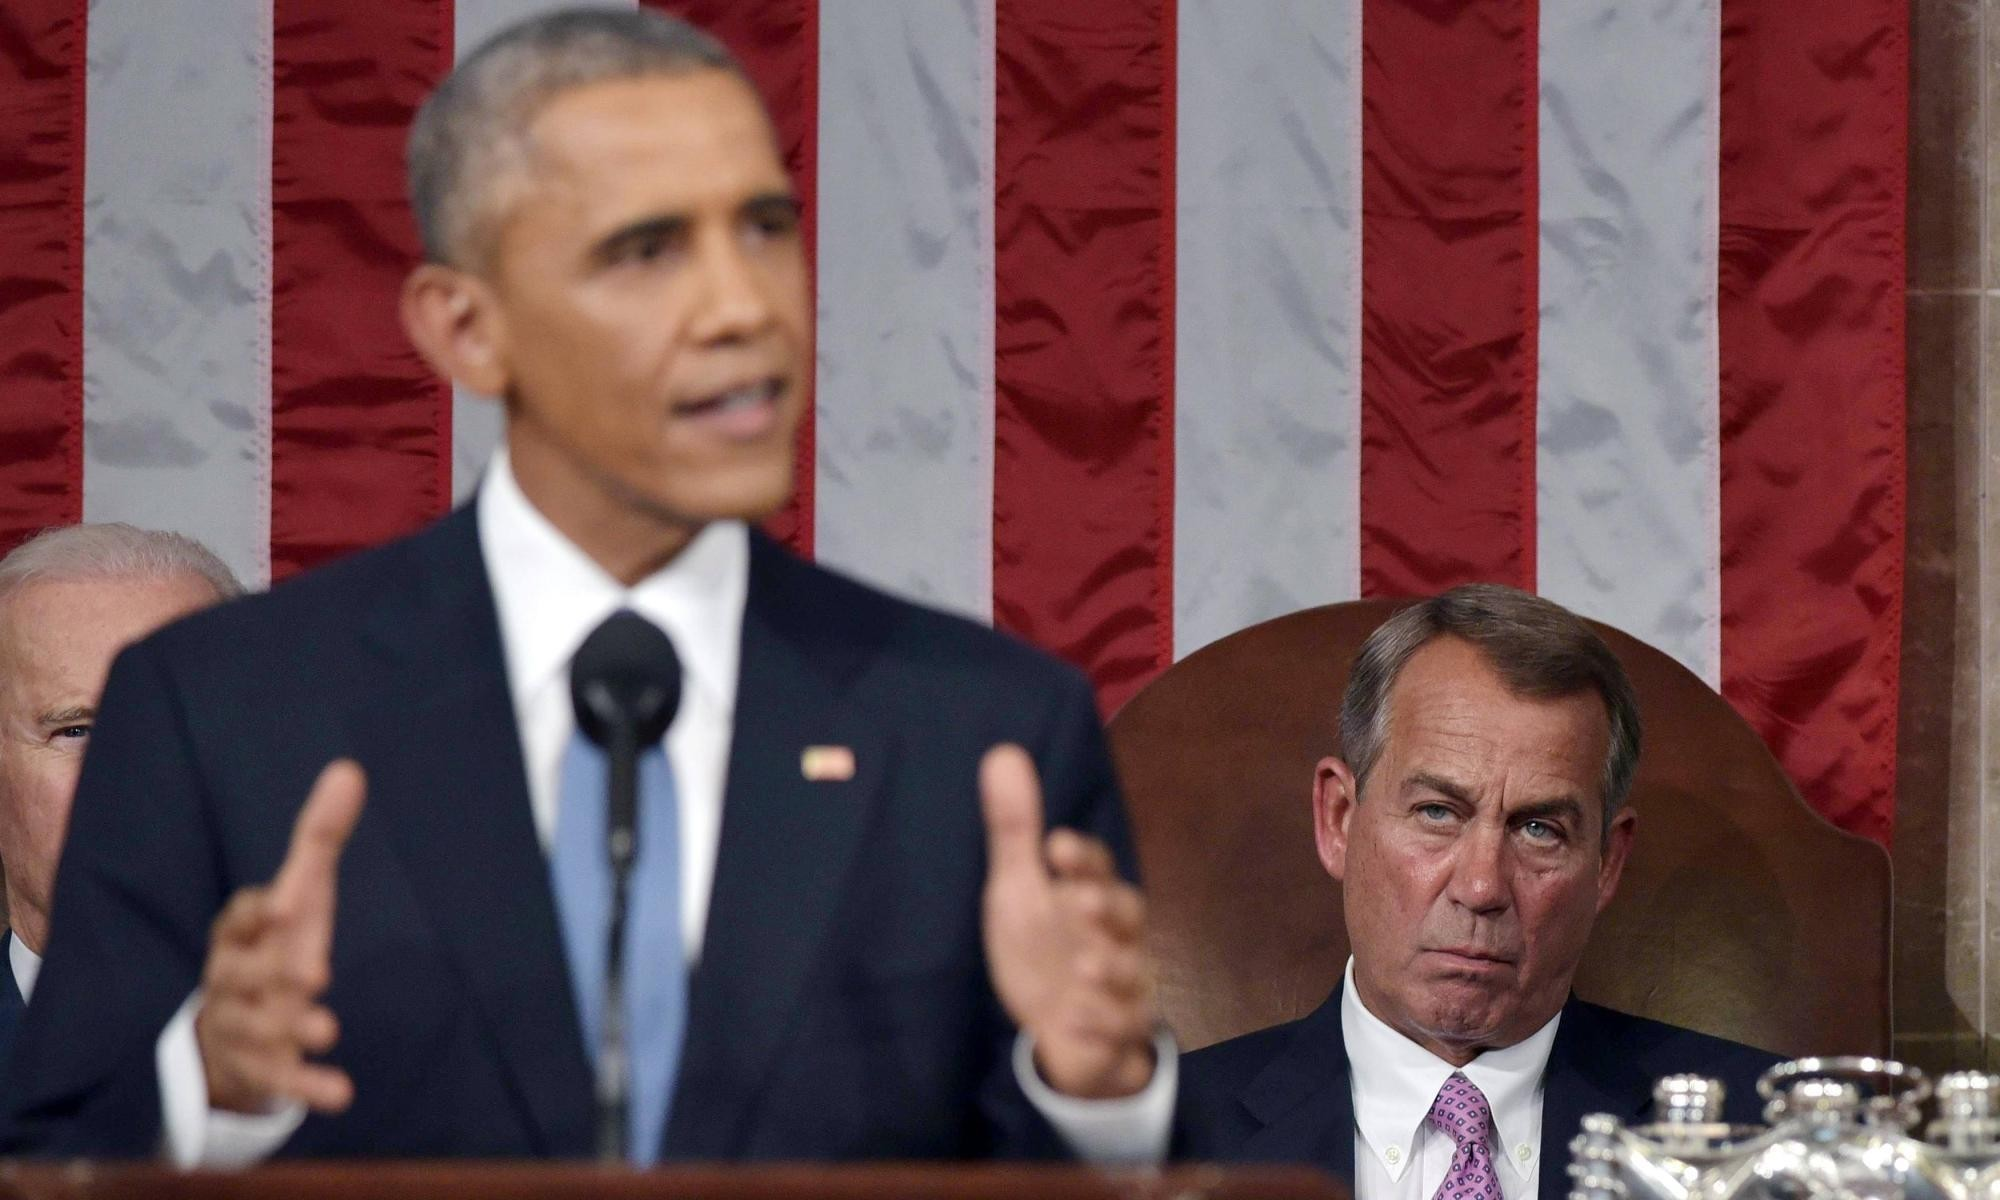 Obama off-the-cuff and full of swagger: State of the Union leaves GOP enraged